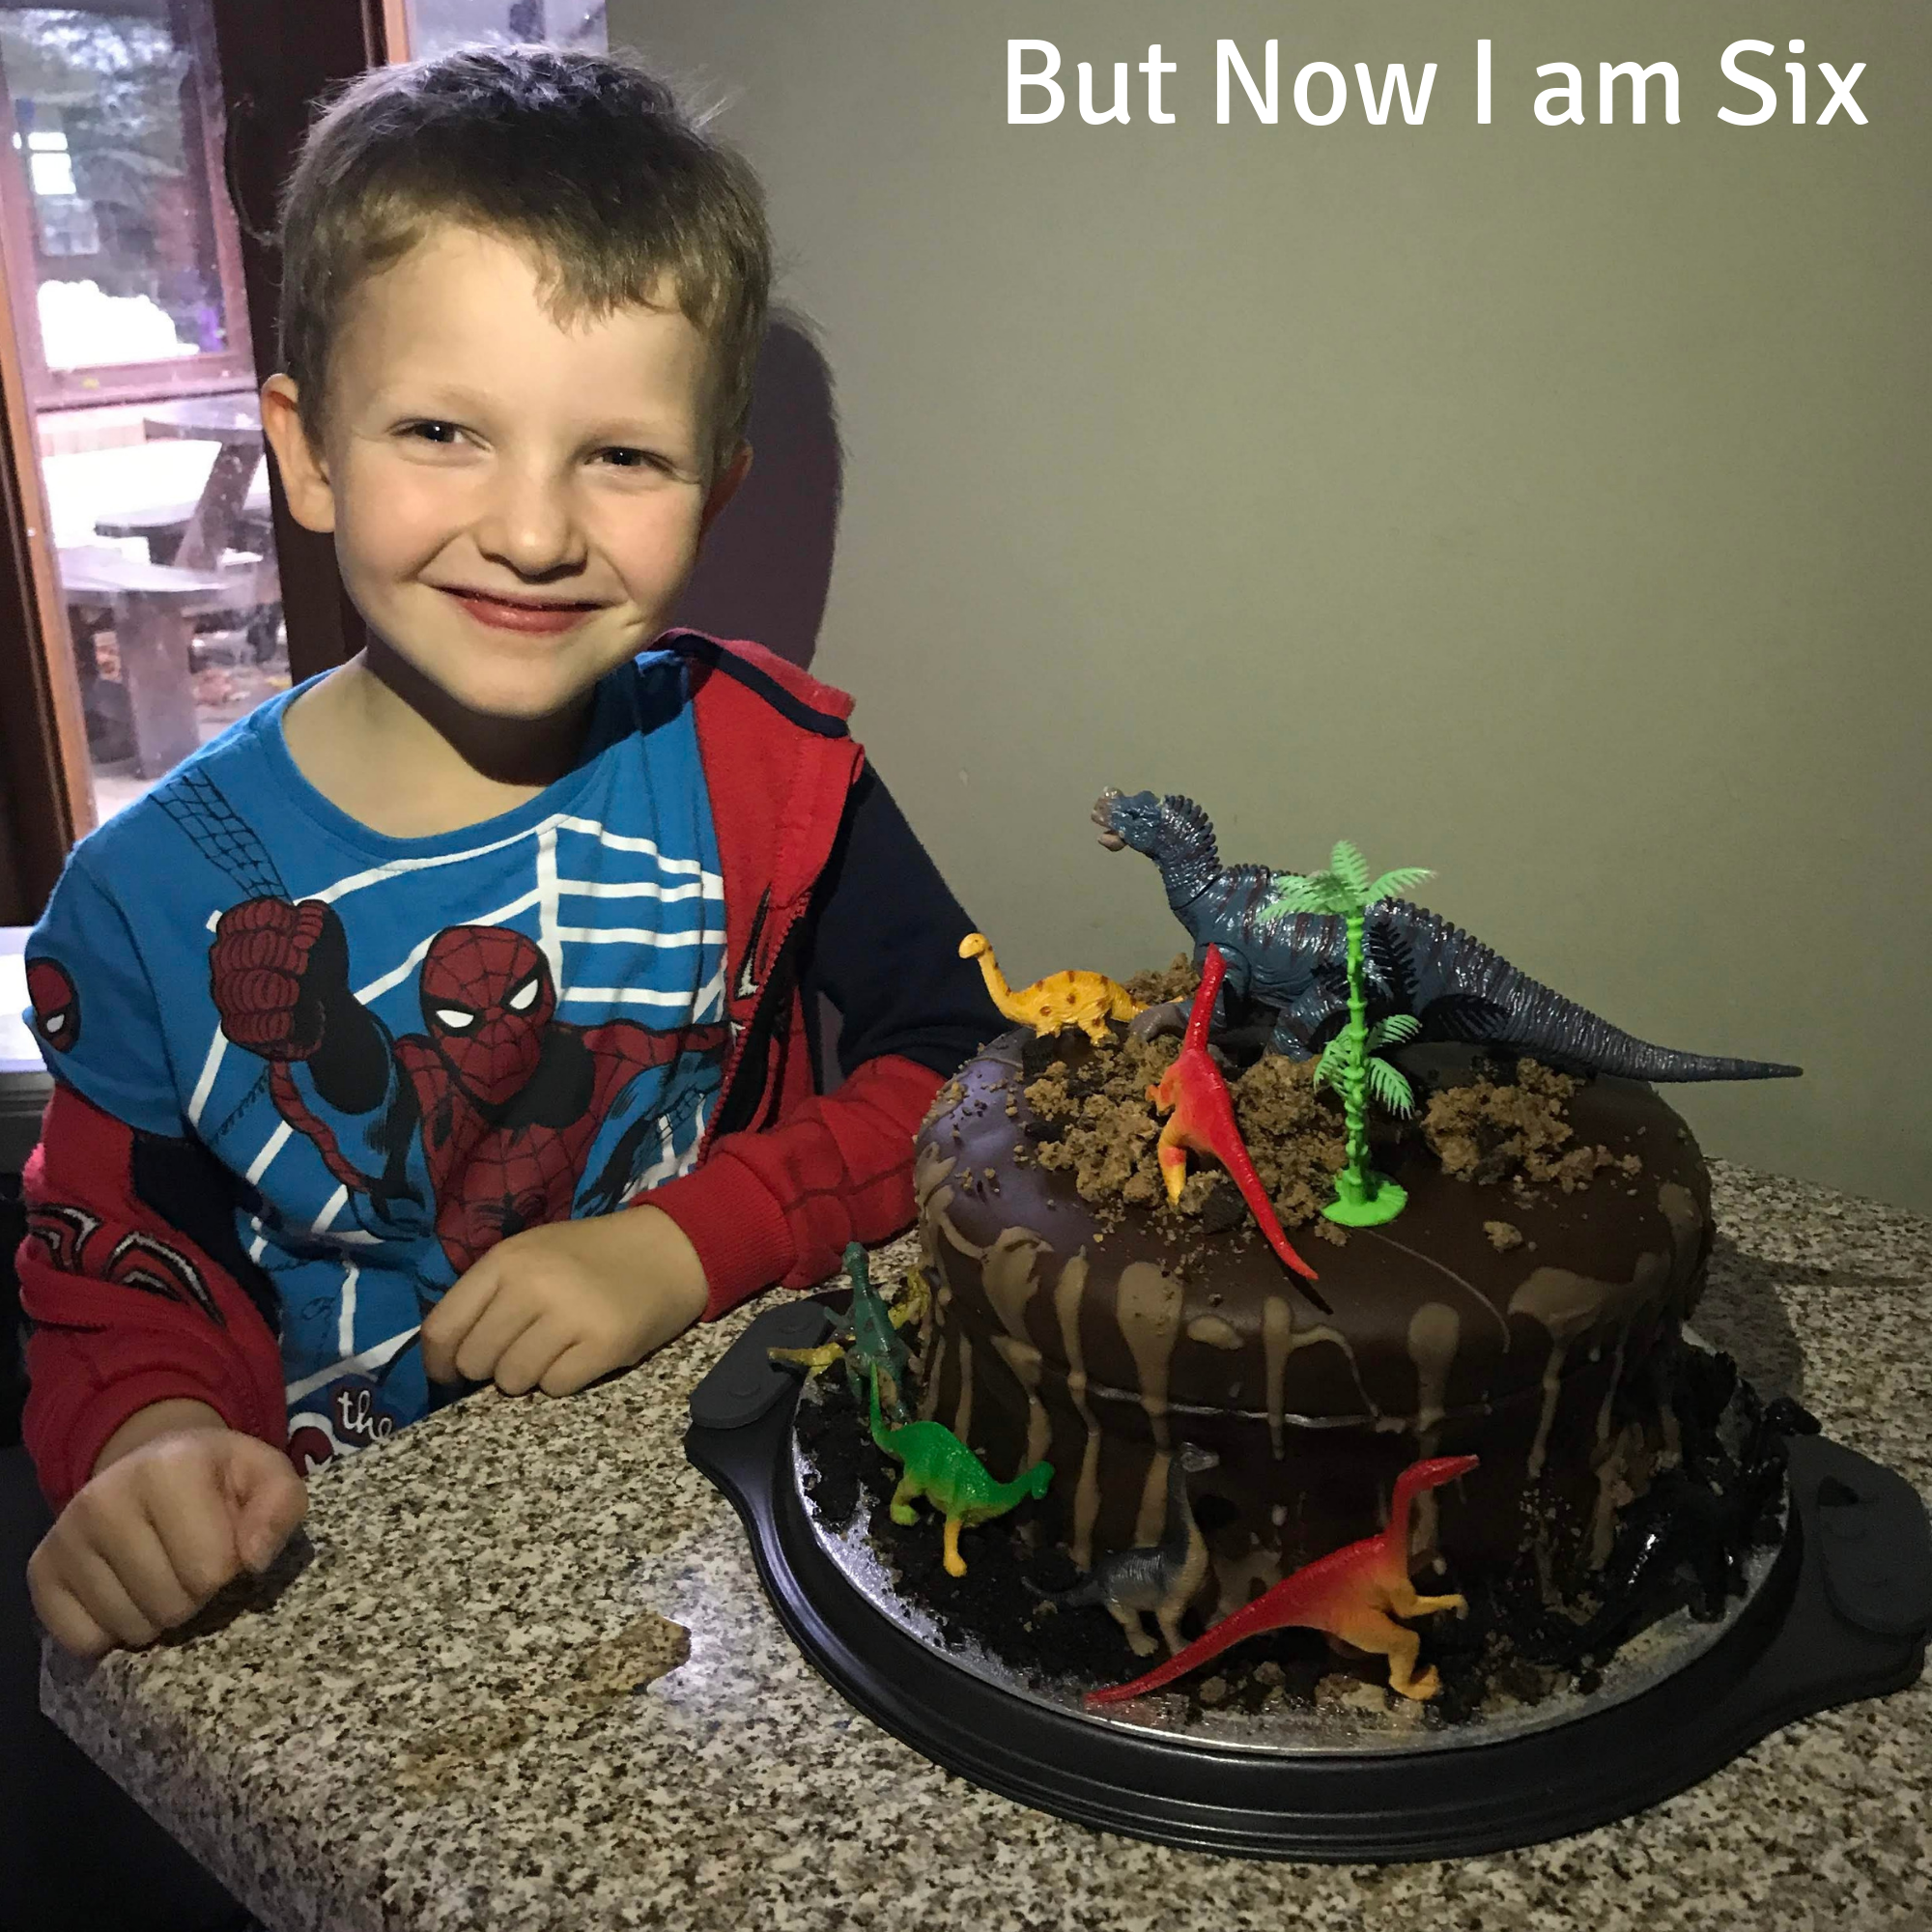 But Now I am Six